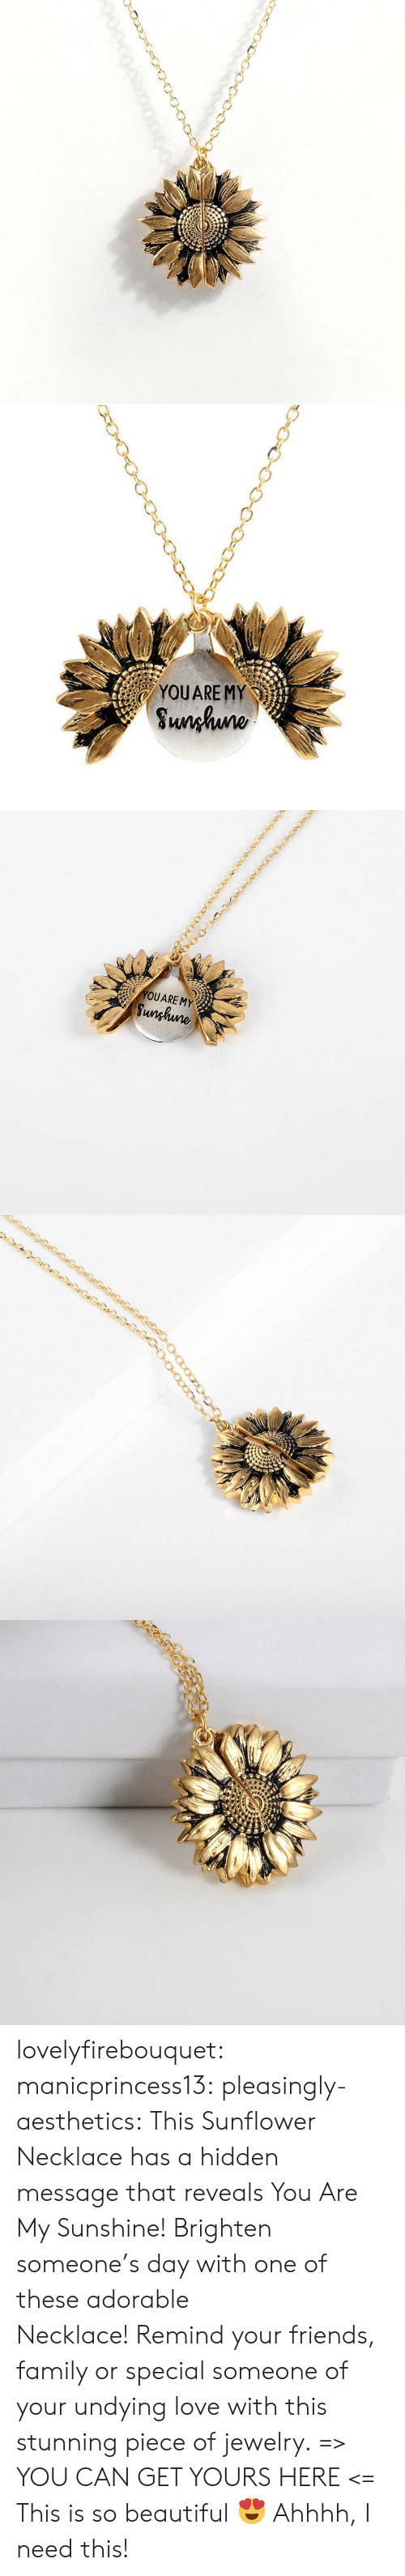 Beautiful, Family, and Friends: YOUARE MY  Sunhuno   YOUARE MY  Sunghune lovelyfirebouquet:  manicprincess13: pleasingly-aesthetics:  This Sunflower Necklace has a hidden message that reveals You Are My Sunshine! Brighten someone's day with one of these adorable Necklace! Remind your friends, family or special someone of your undying love with this stunning piece of jewelry. => YOU CAN GET YOURS HERE <=   This is so beautiful 😍   Ahhhh, I need this!